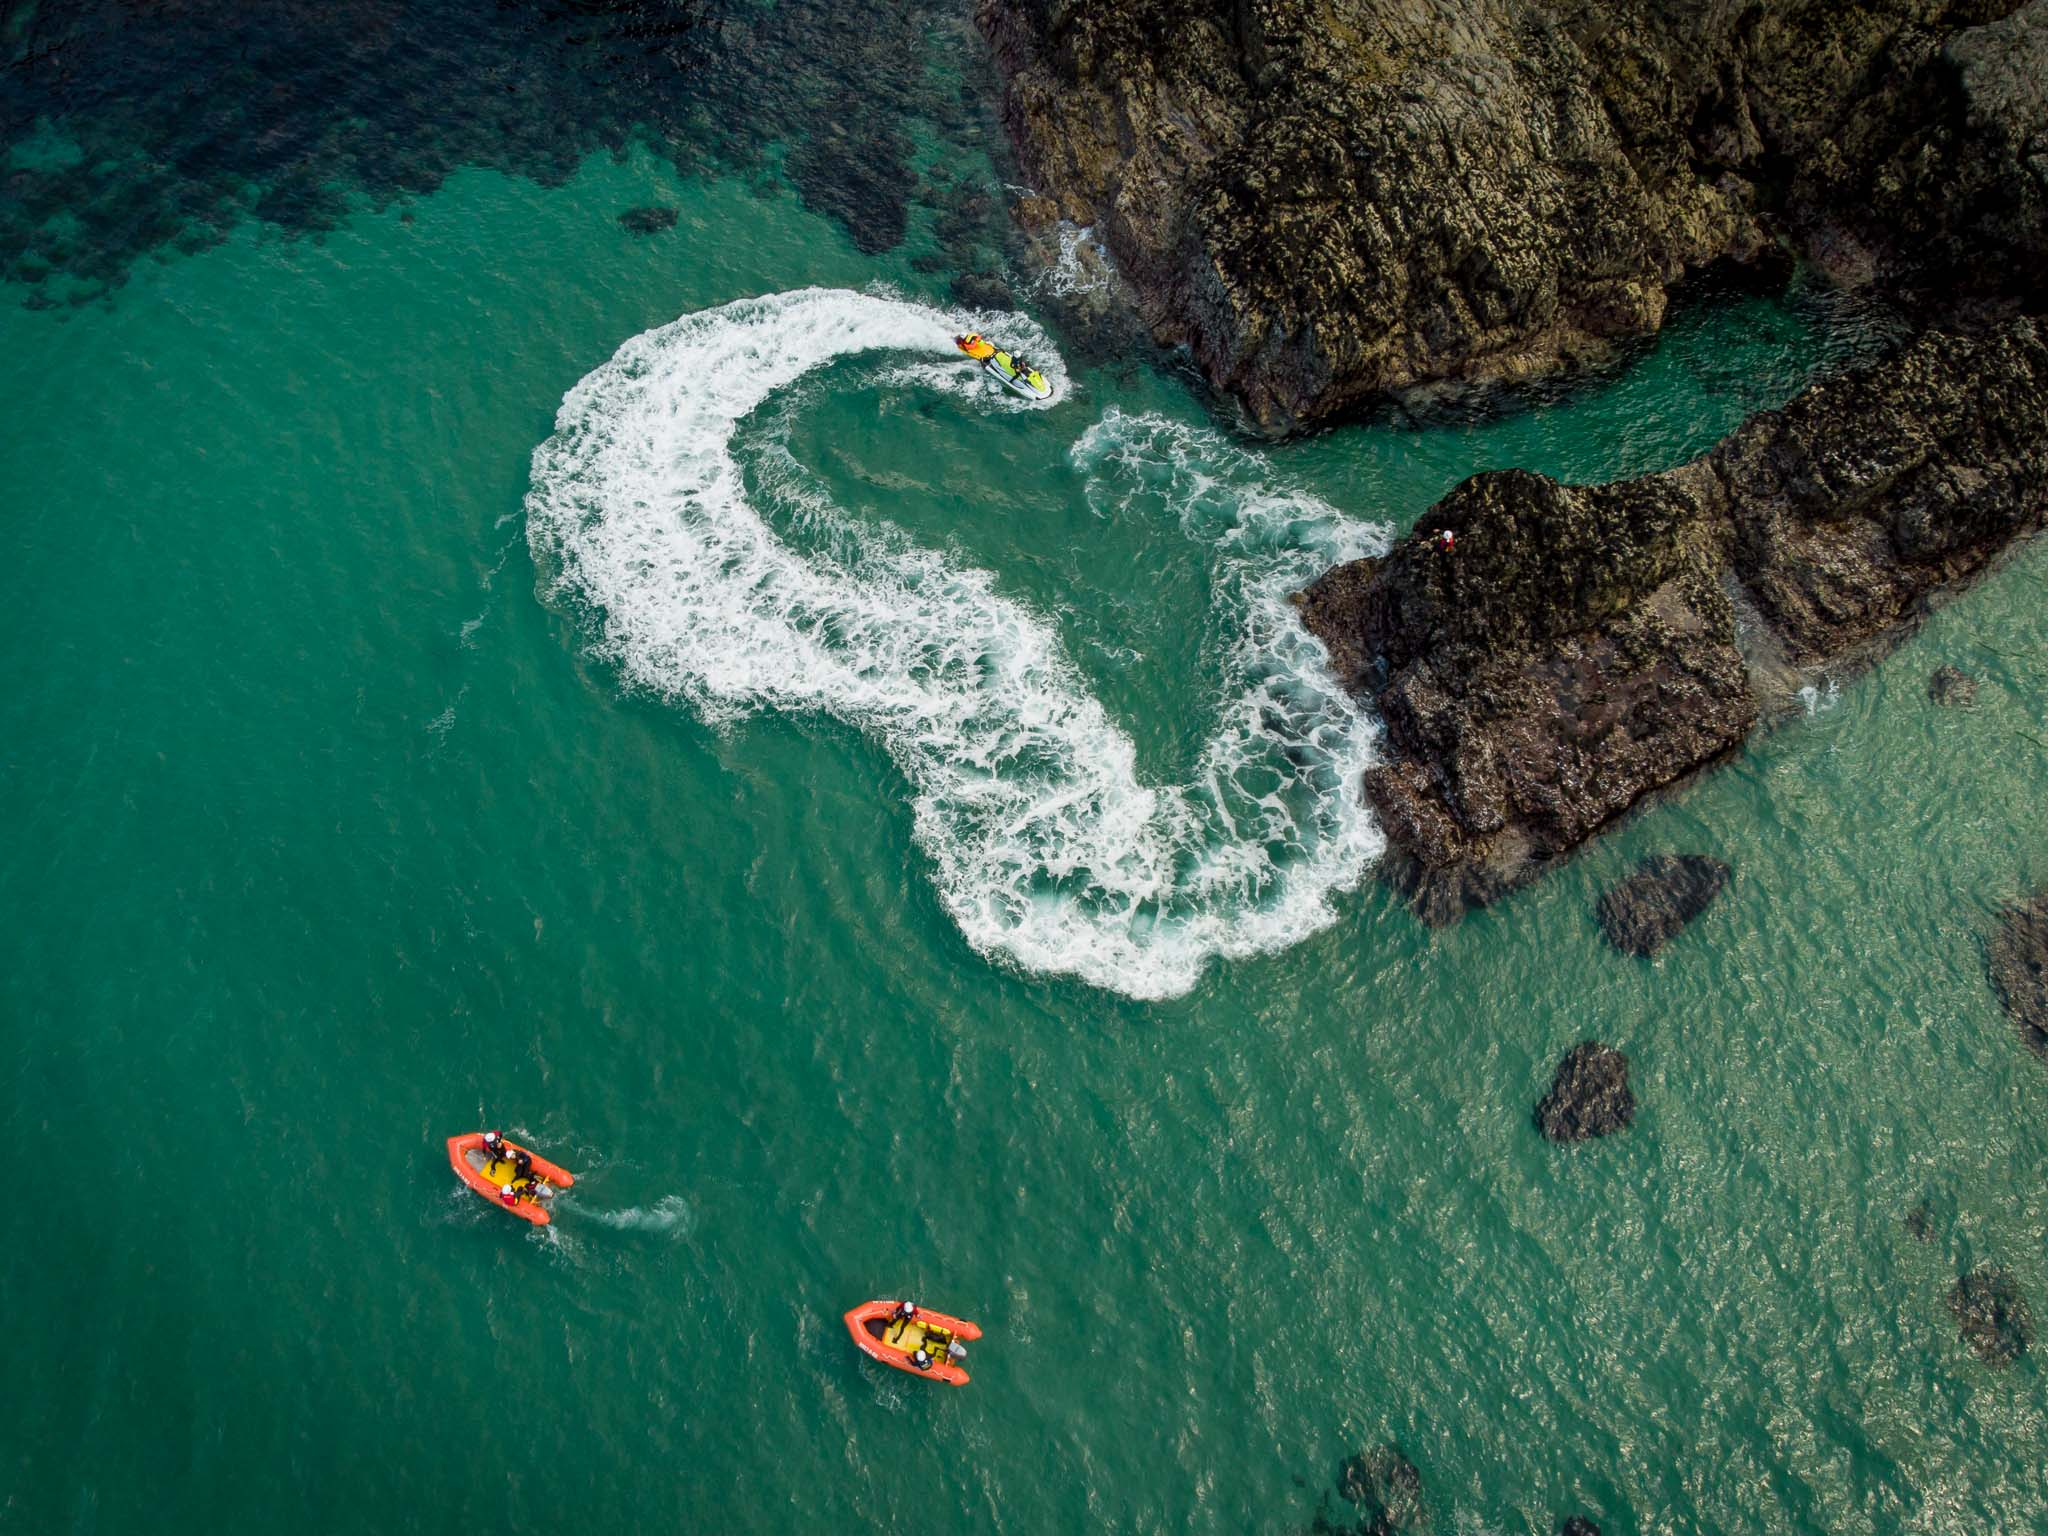 unconscious tube rescue of casualty from rocks